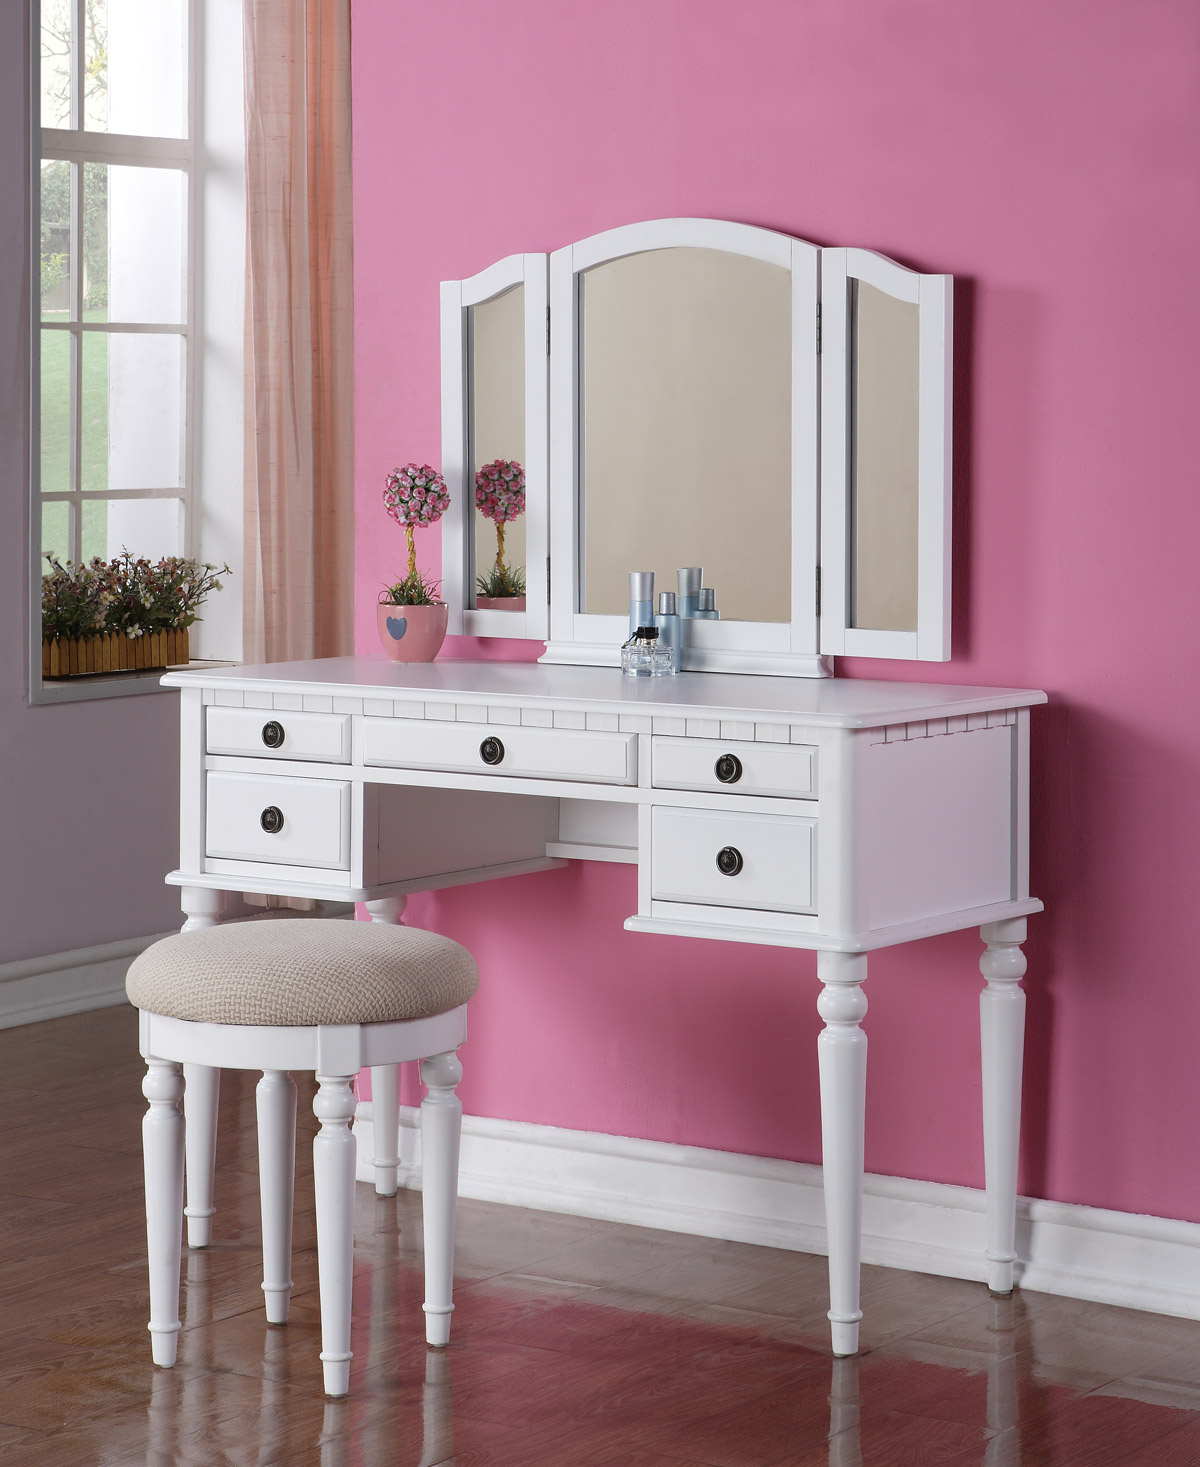 Beautiful 3 pc elegant white finish vanity table mirror stool makeup set ebay - Stool for vanity table ...